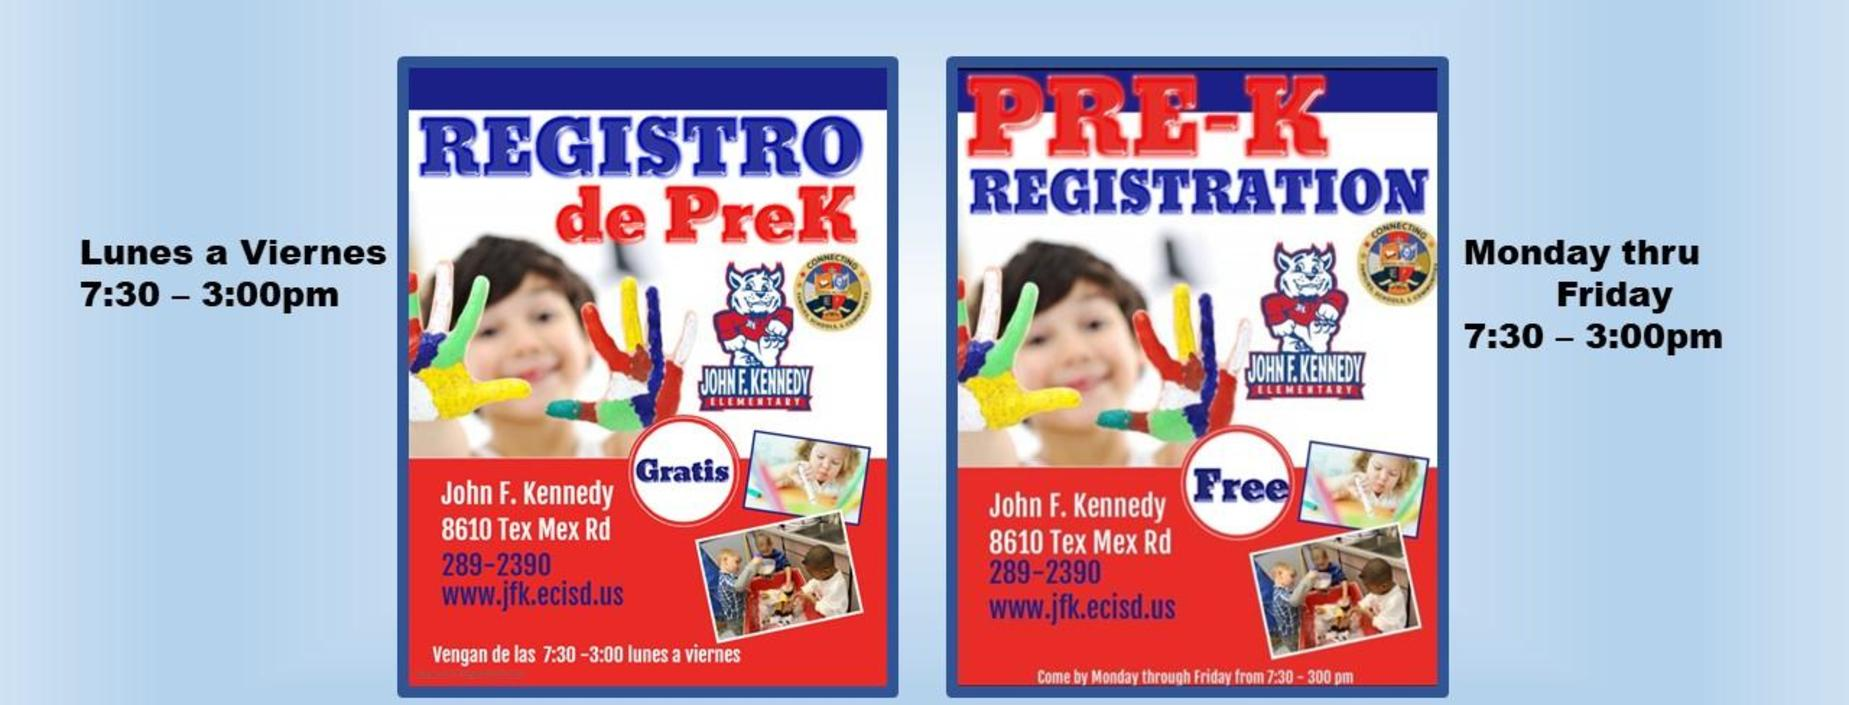 prekinder registration